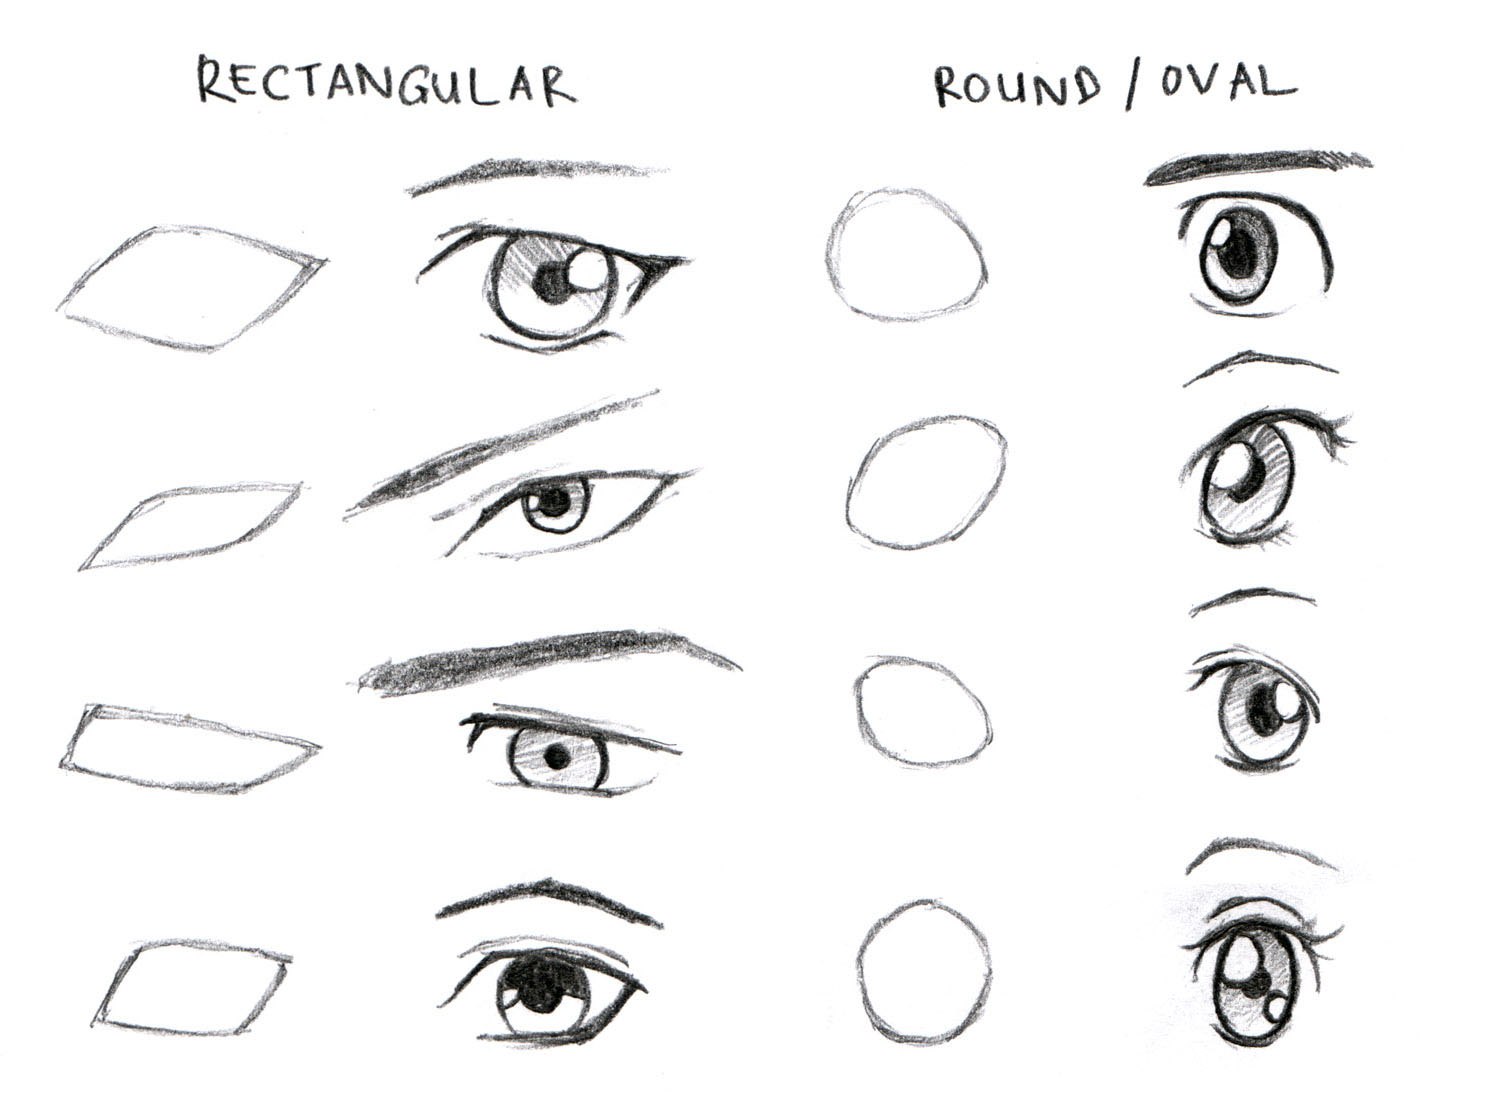 JohnnyBrou0026#39;s How To Draw Manga Drawing Manga Eyes (Part II)